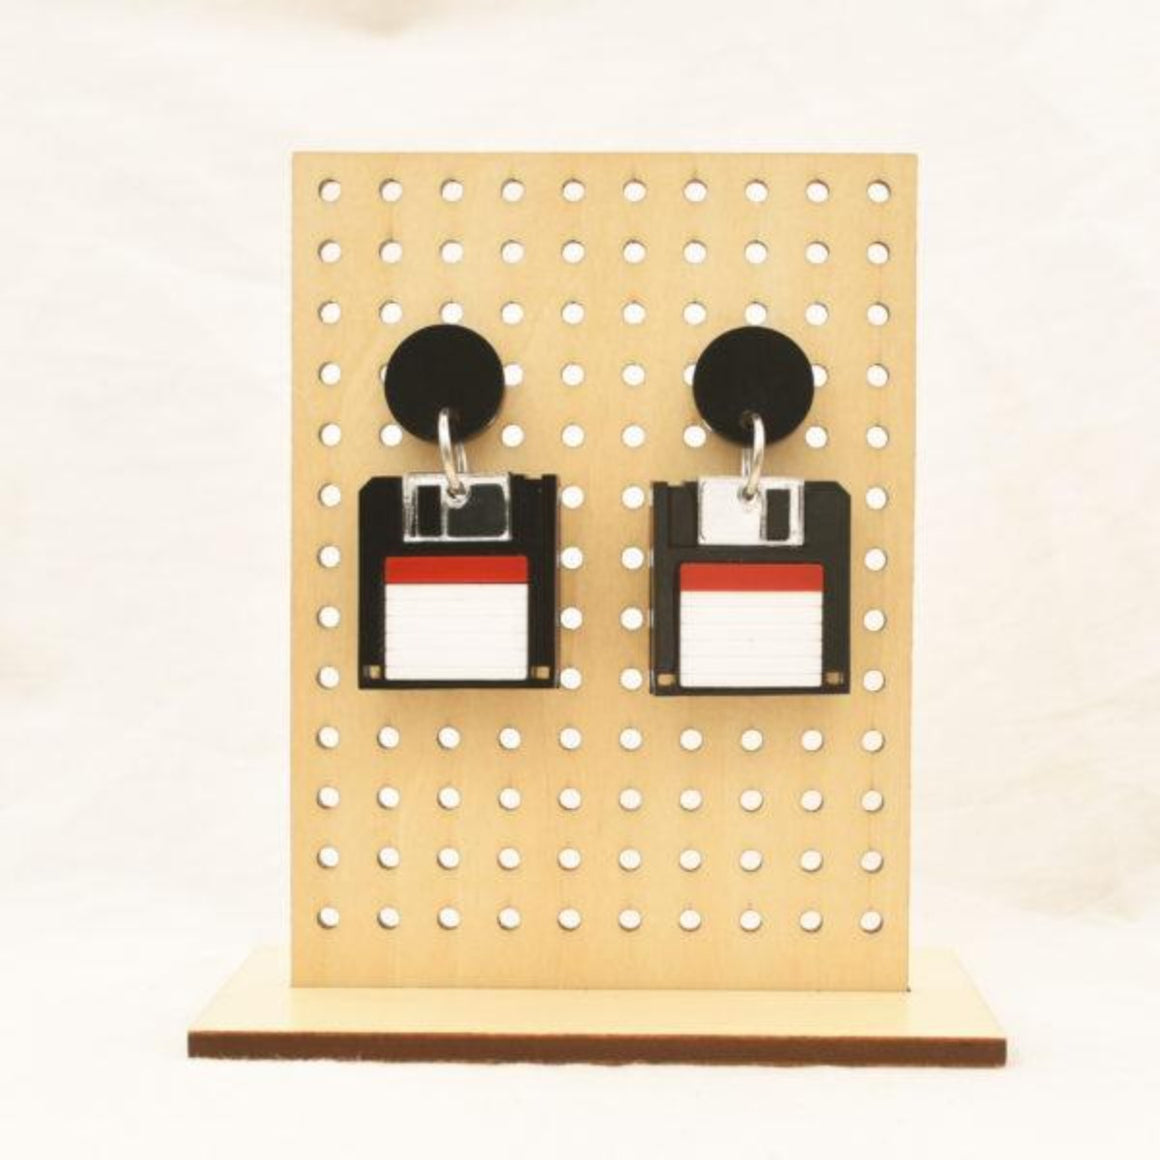 Image featuring a tanned wood stand holding two graphically illustrated earrings with floppy disc in a black, red, white colours